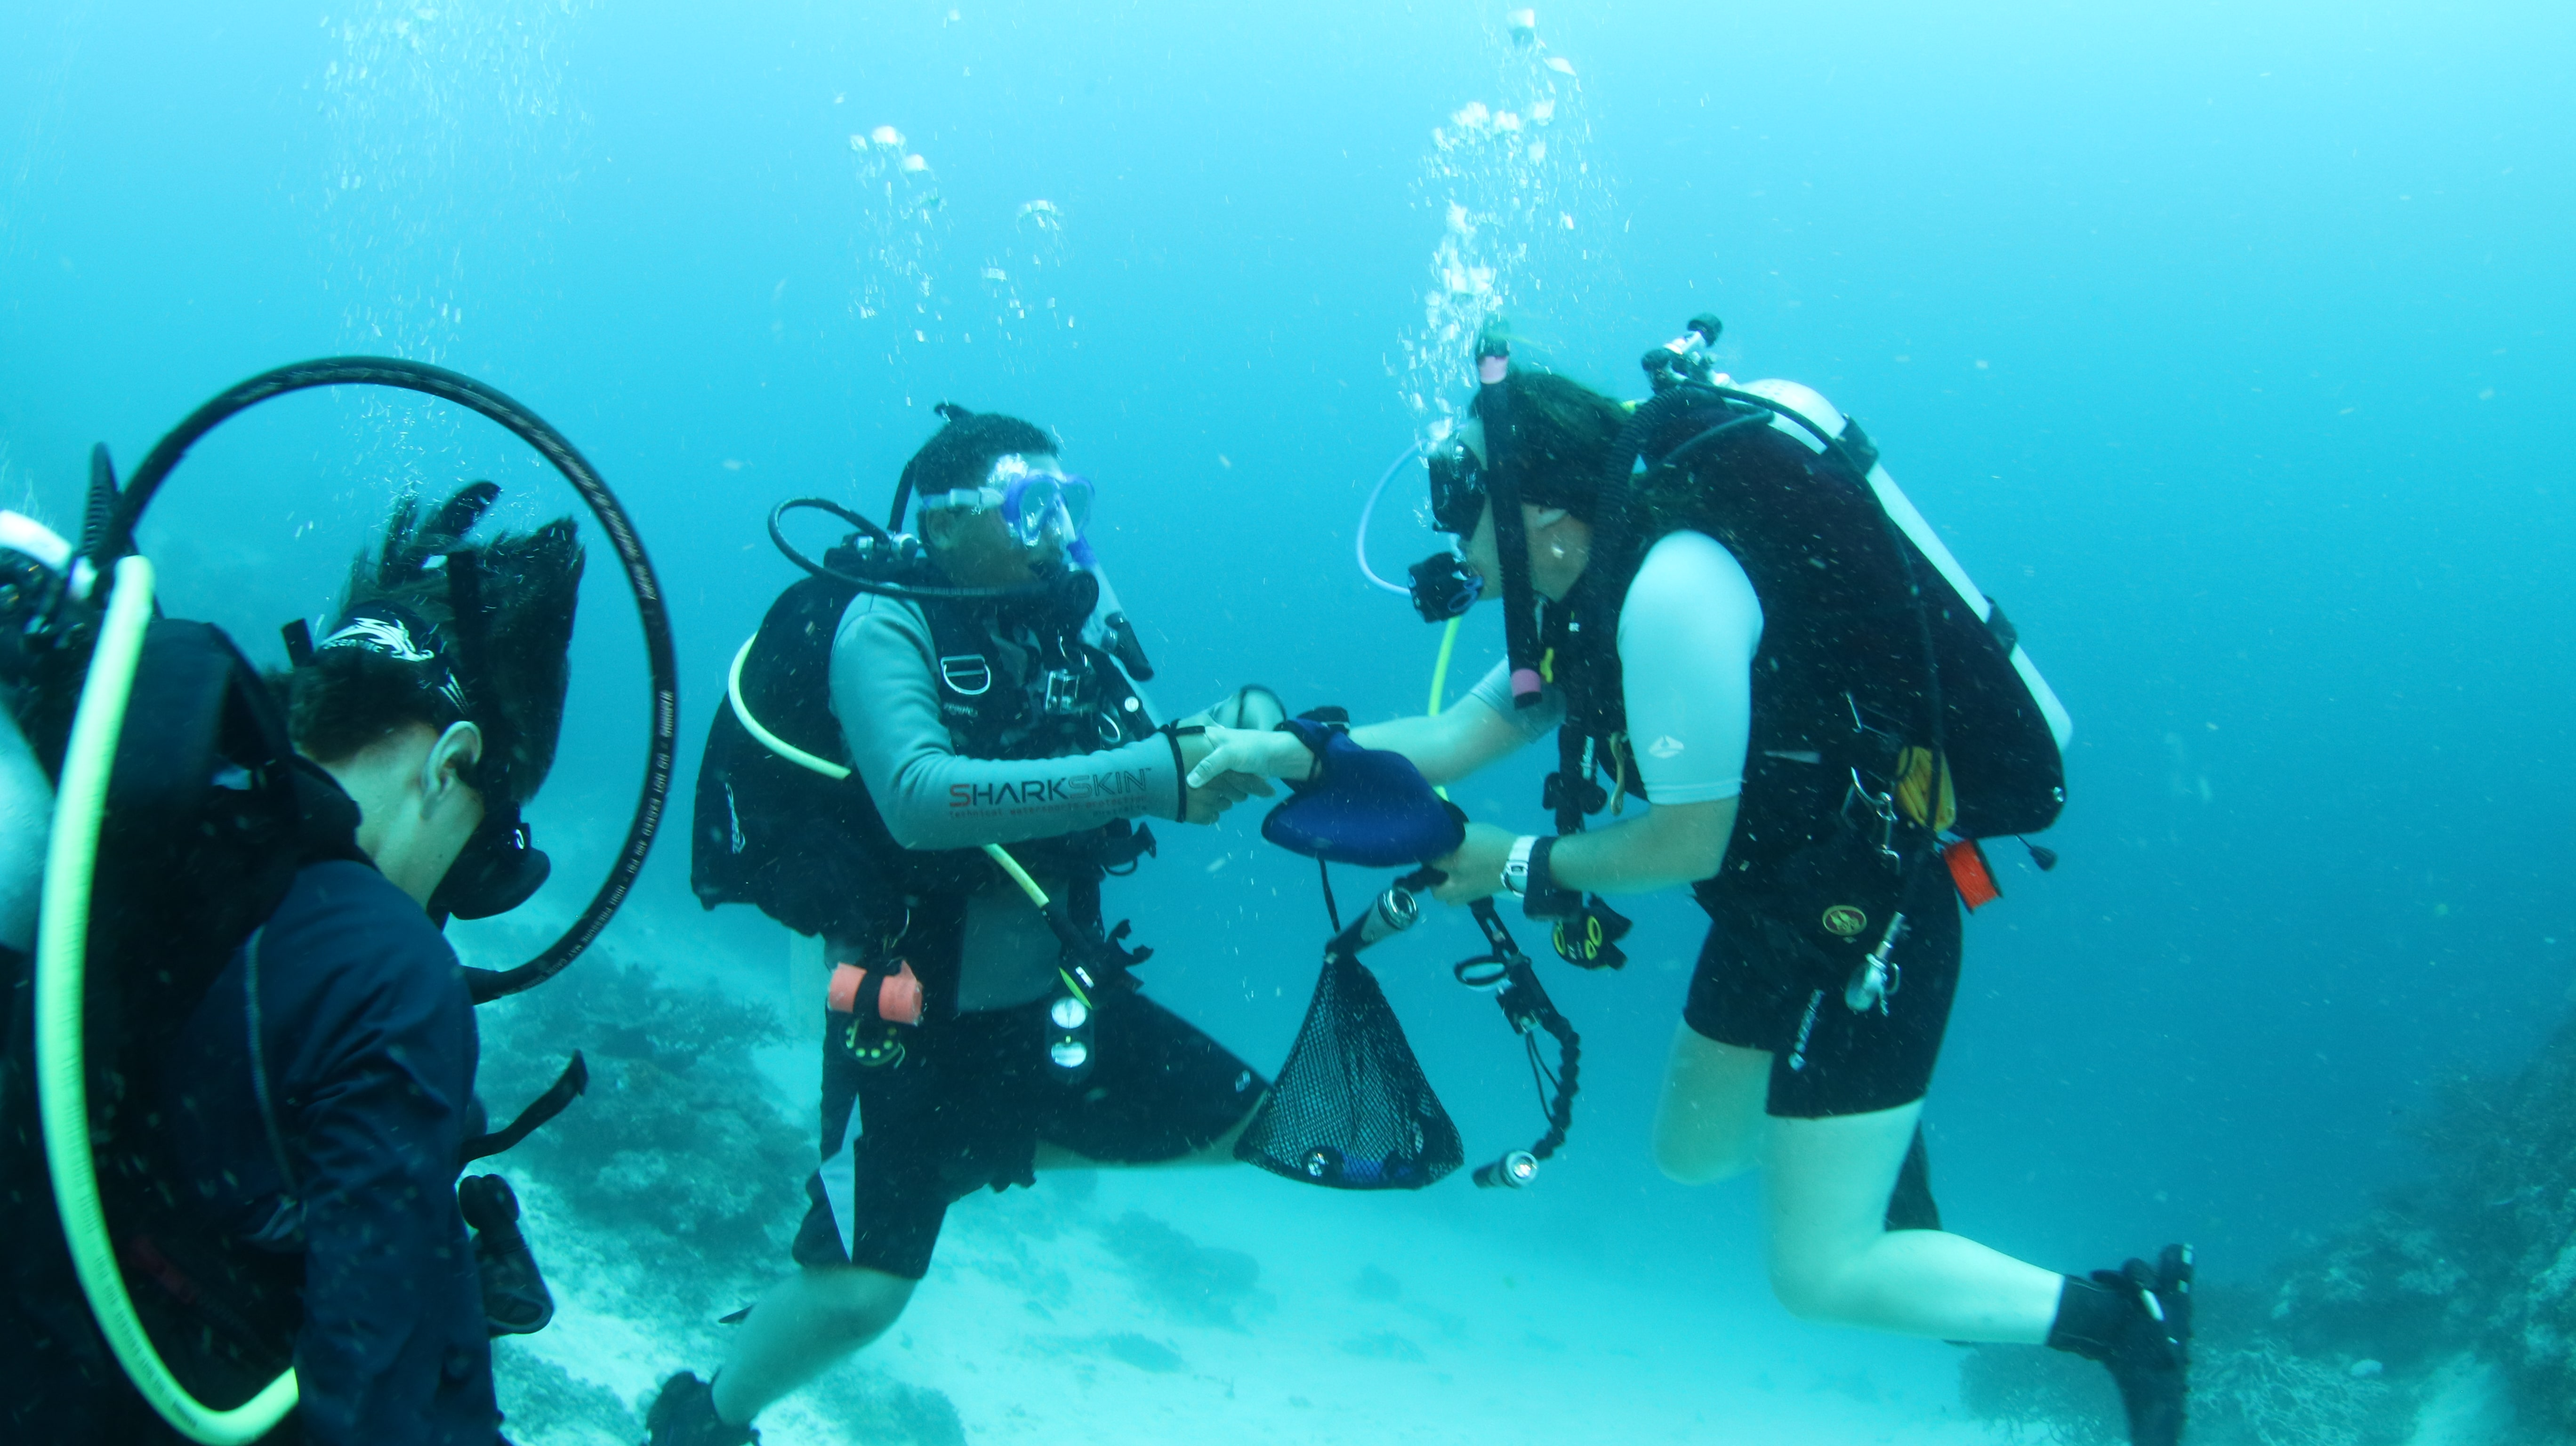 Twelve Year Old Becomes Youngest Padi Certified Junior Master Scuba